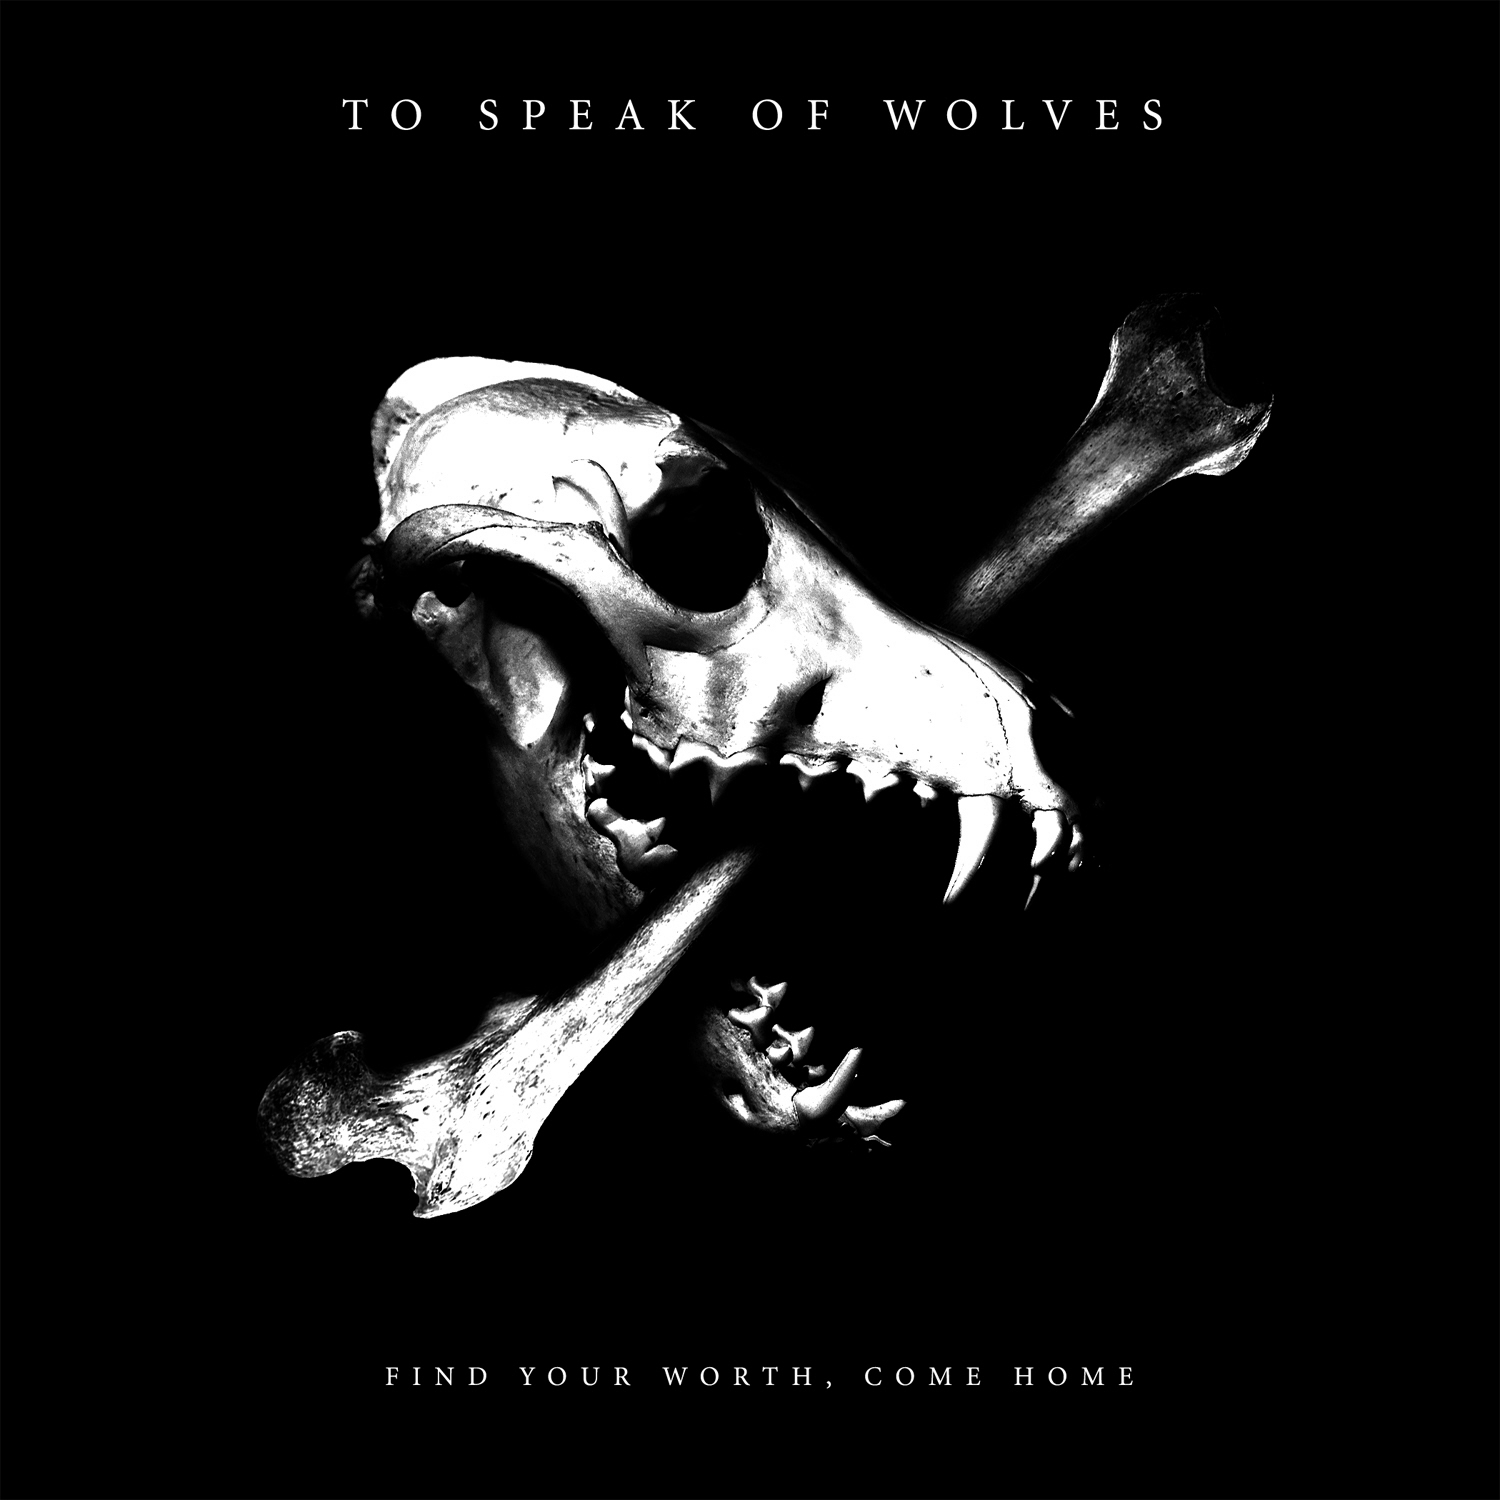 to-speak-of-wolves-find-your-worth-come-home-wallpaper-album-artwork.jpg